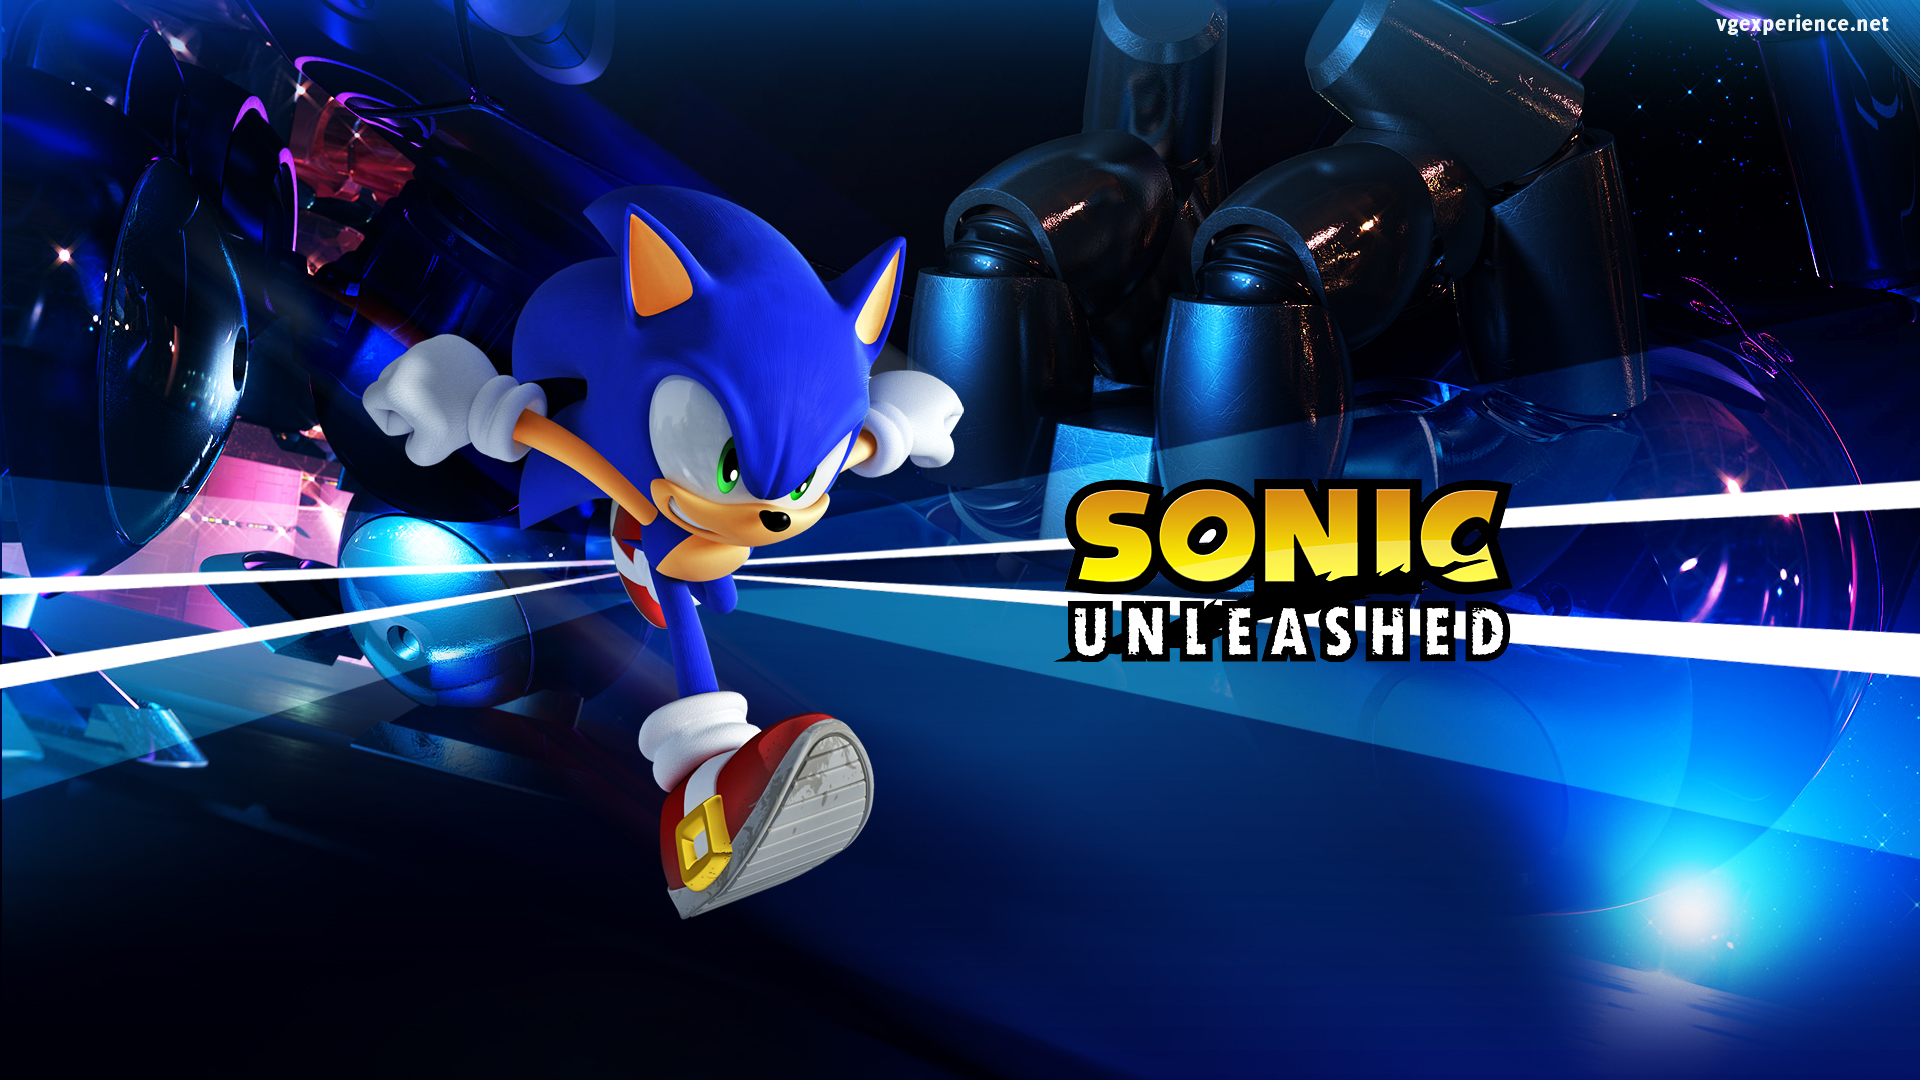 Cool Sonic Wallpapers Sf Wallpaper